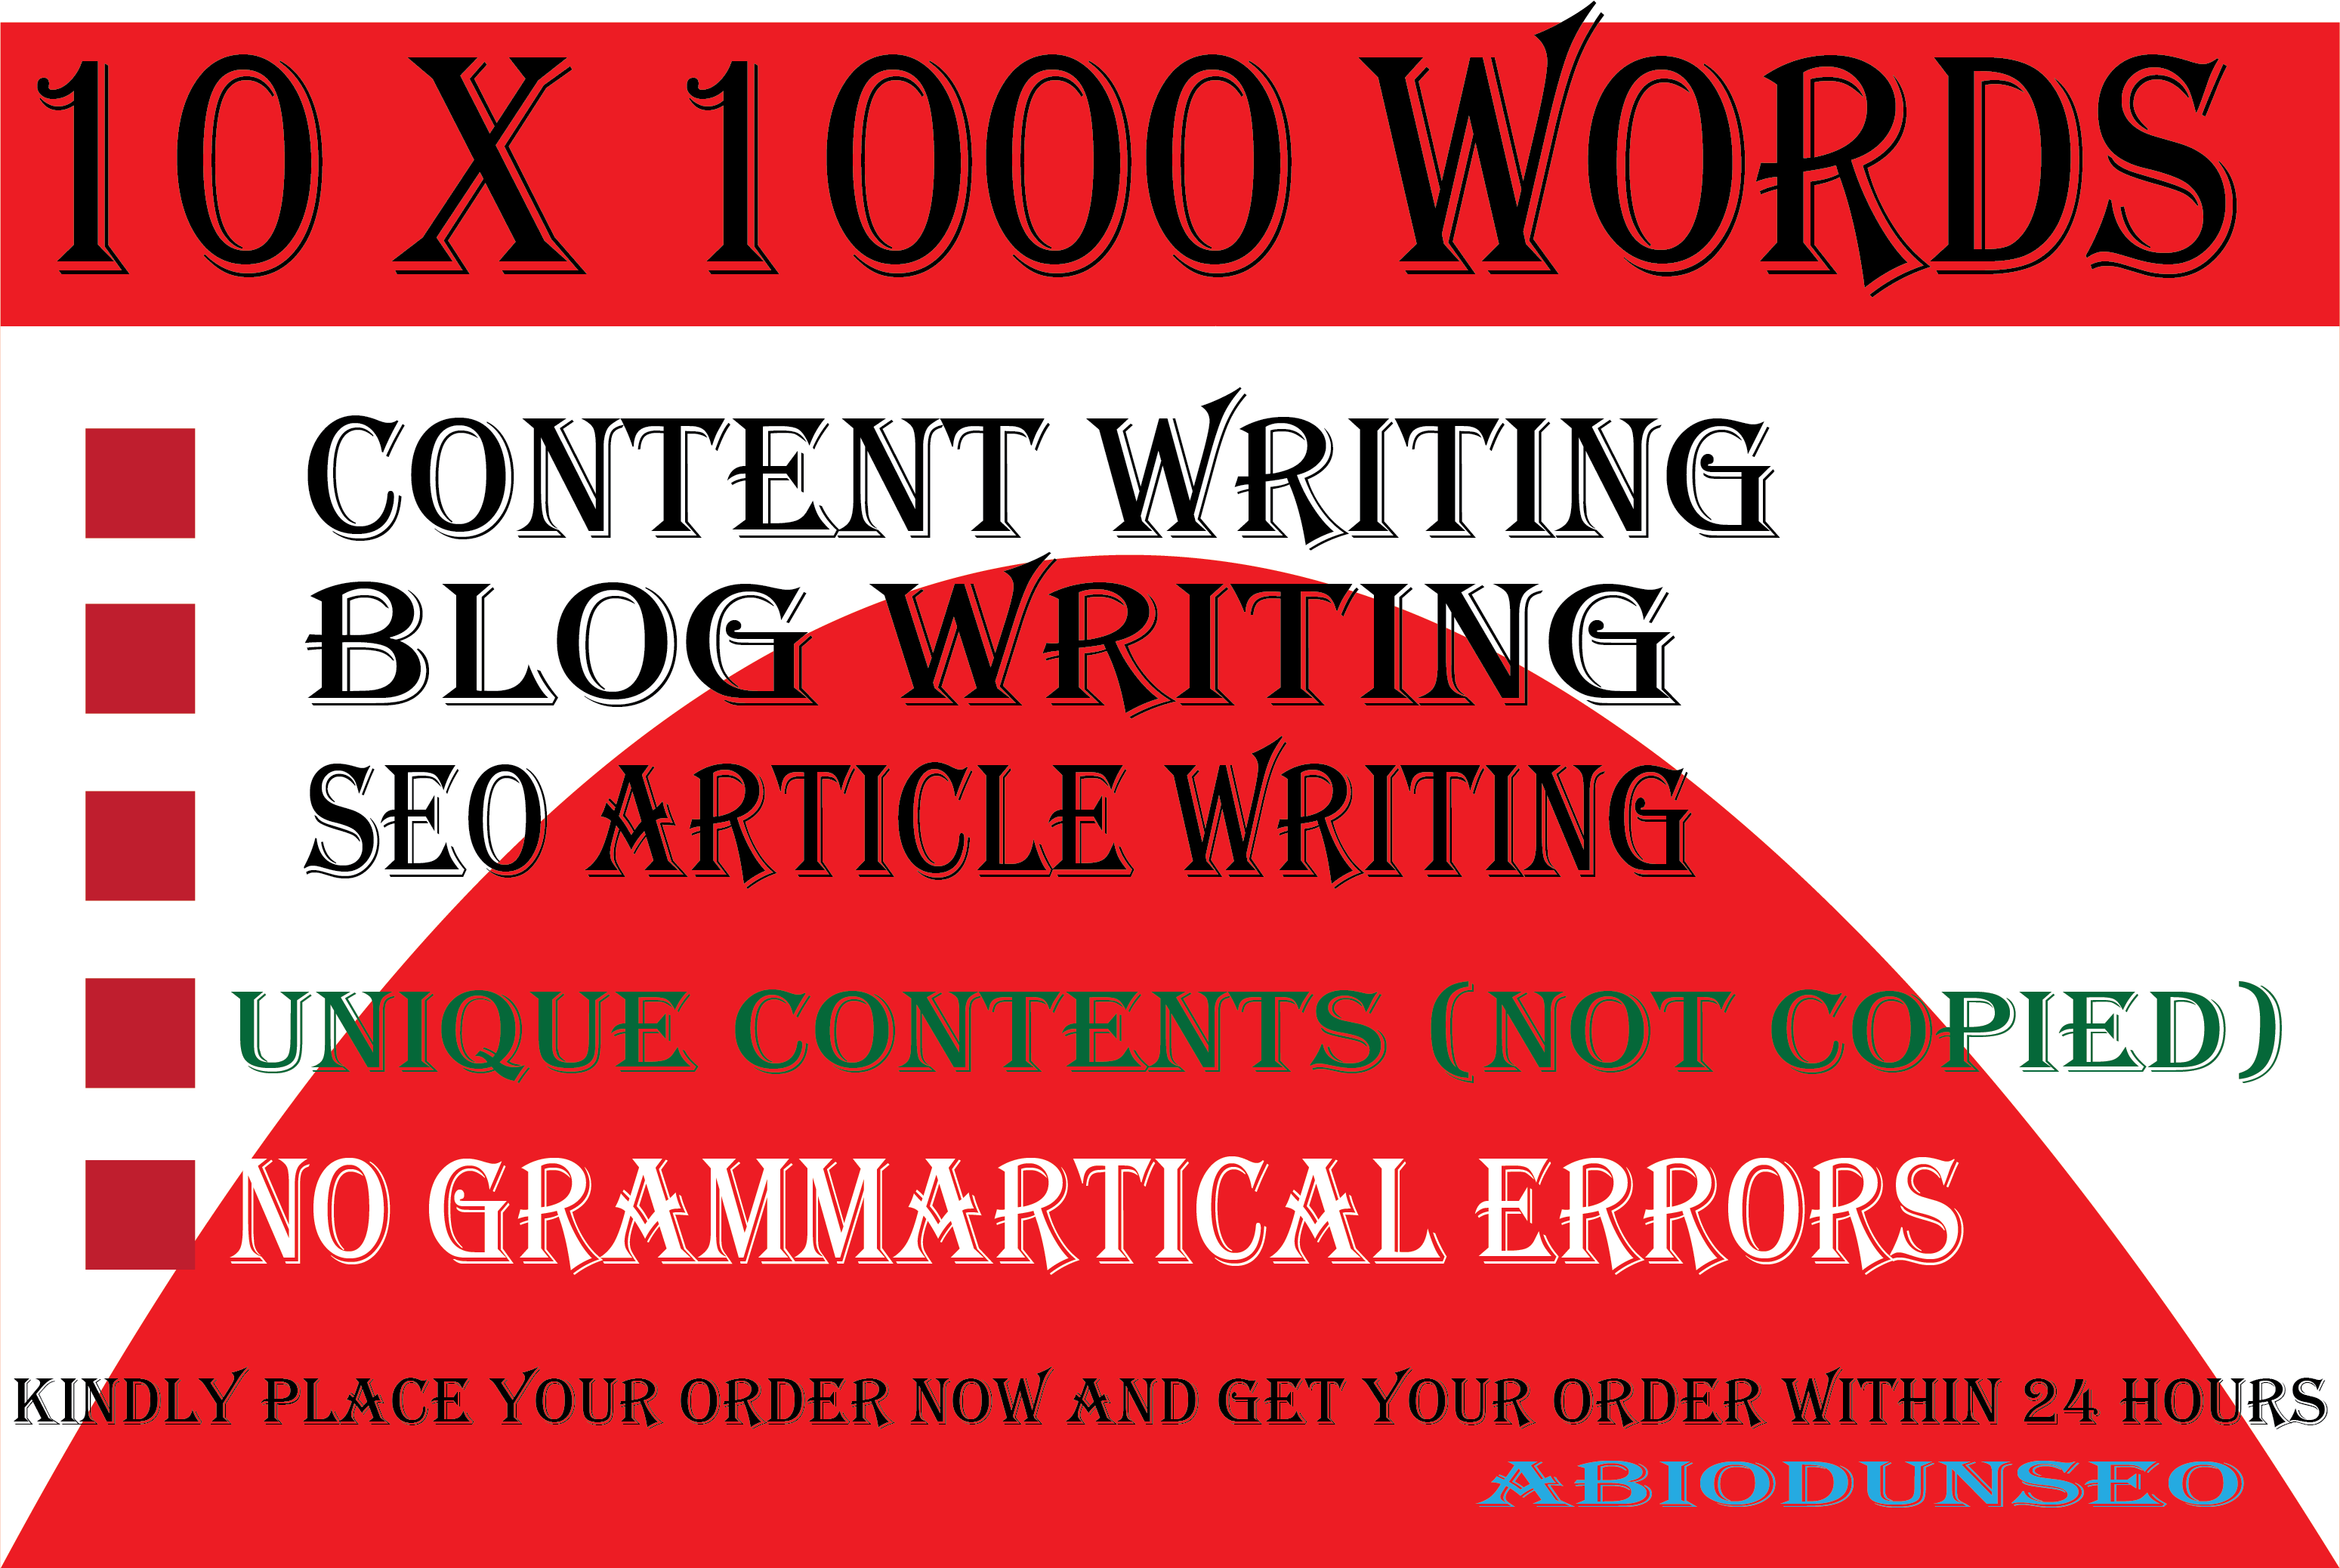 I will write 10 X 1000 words quality blogs post,  SEO content and articles writing for your website